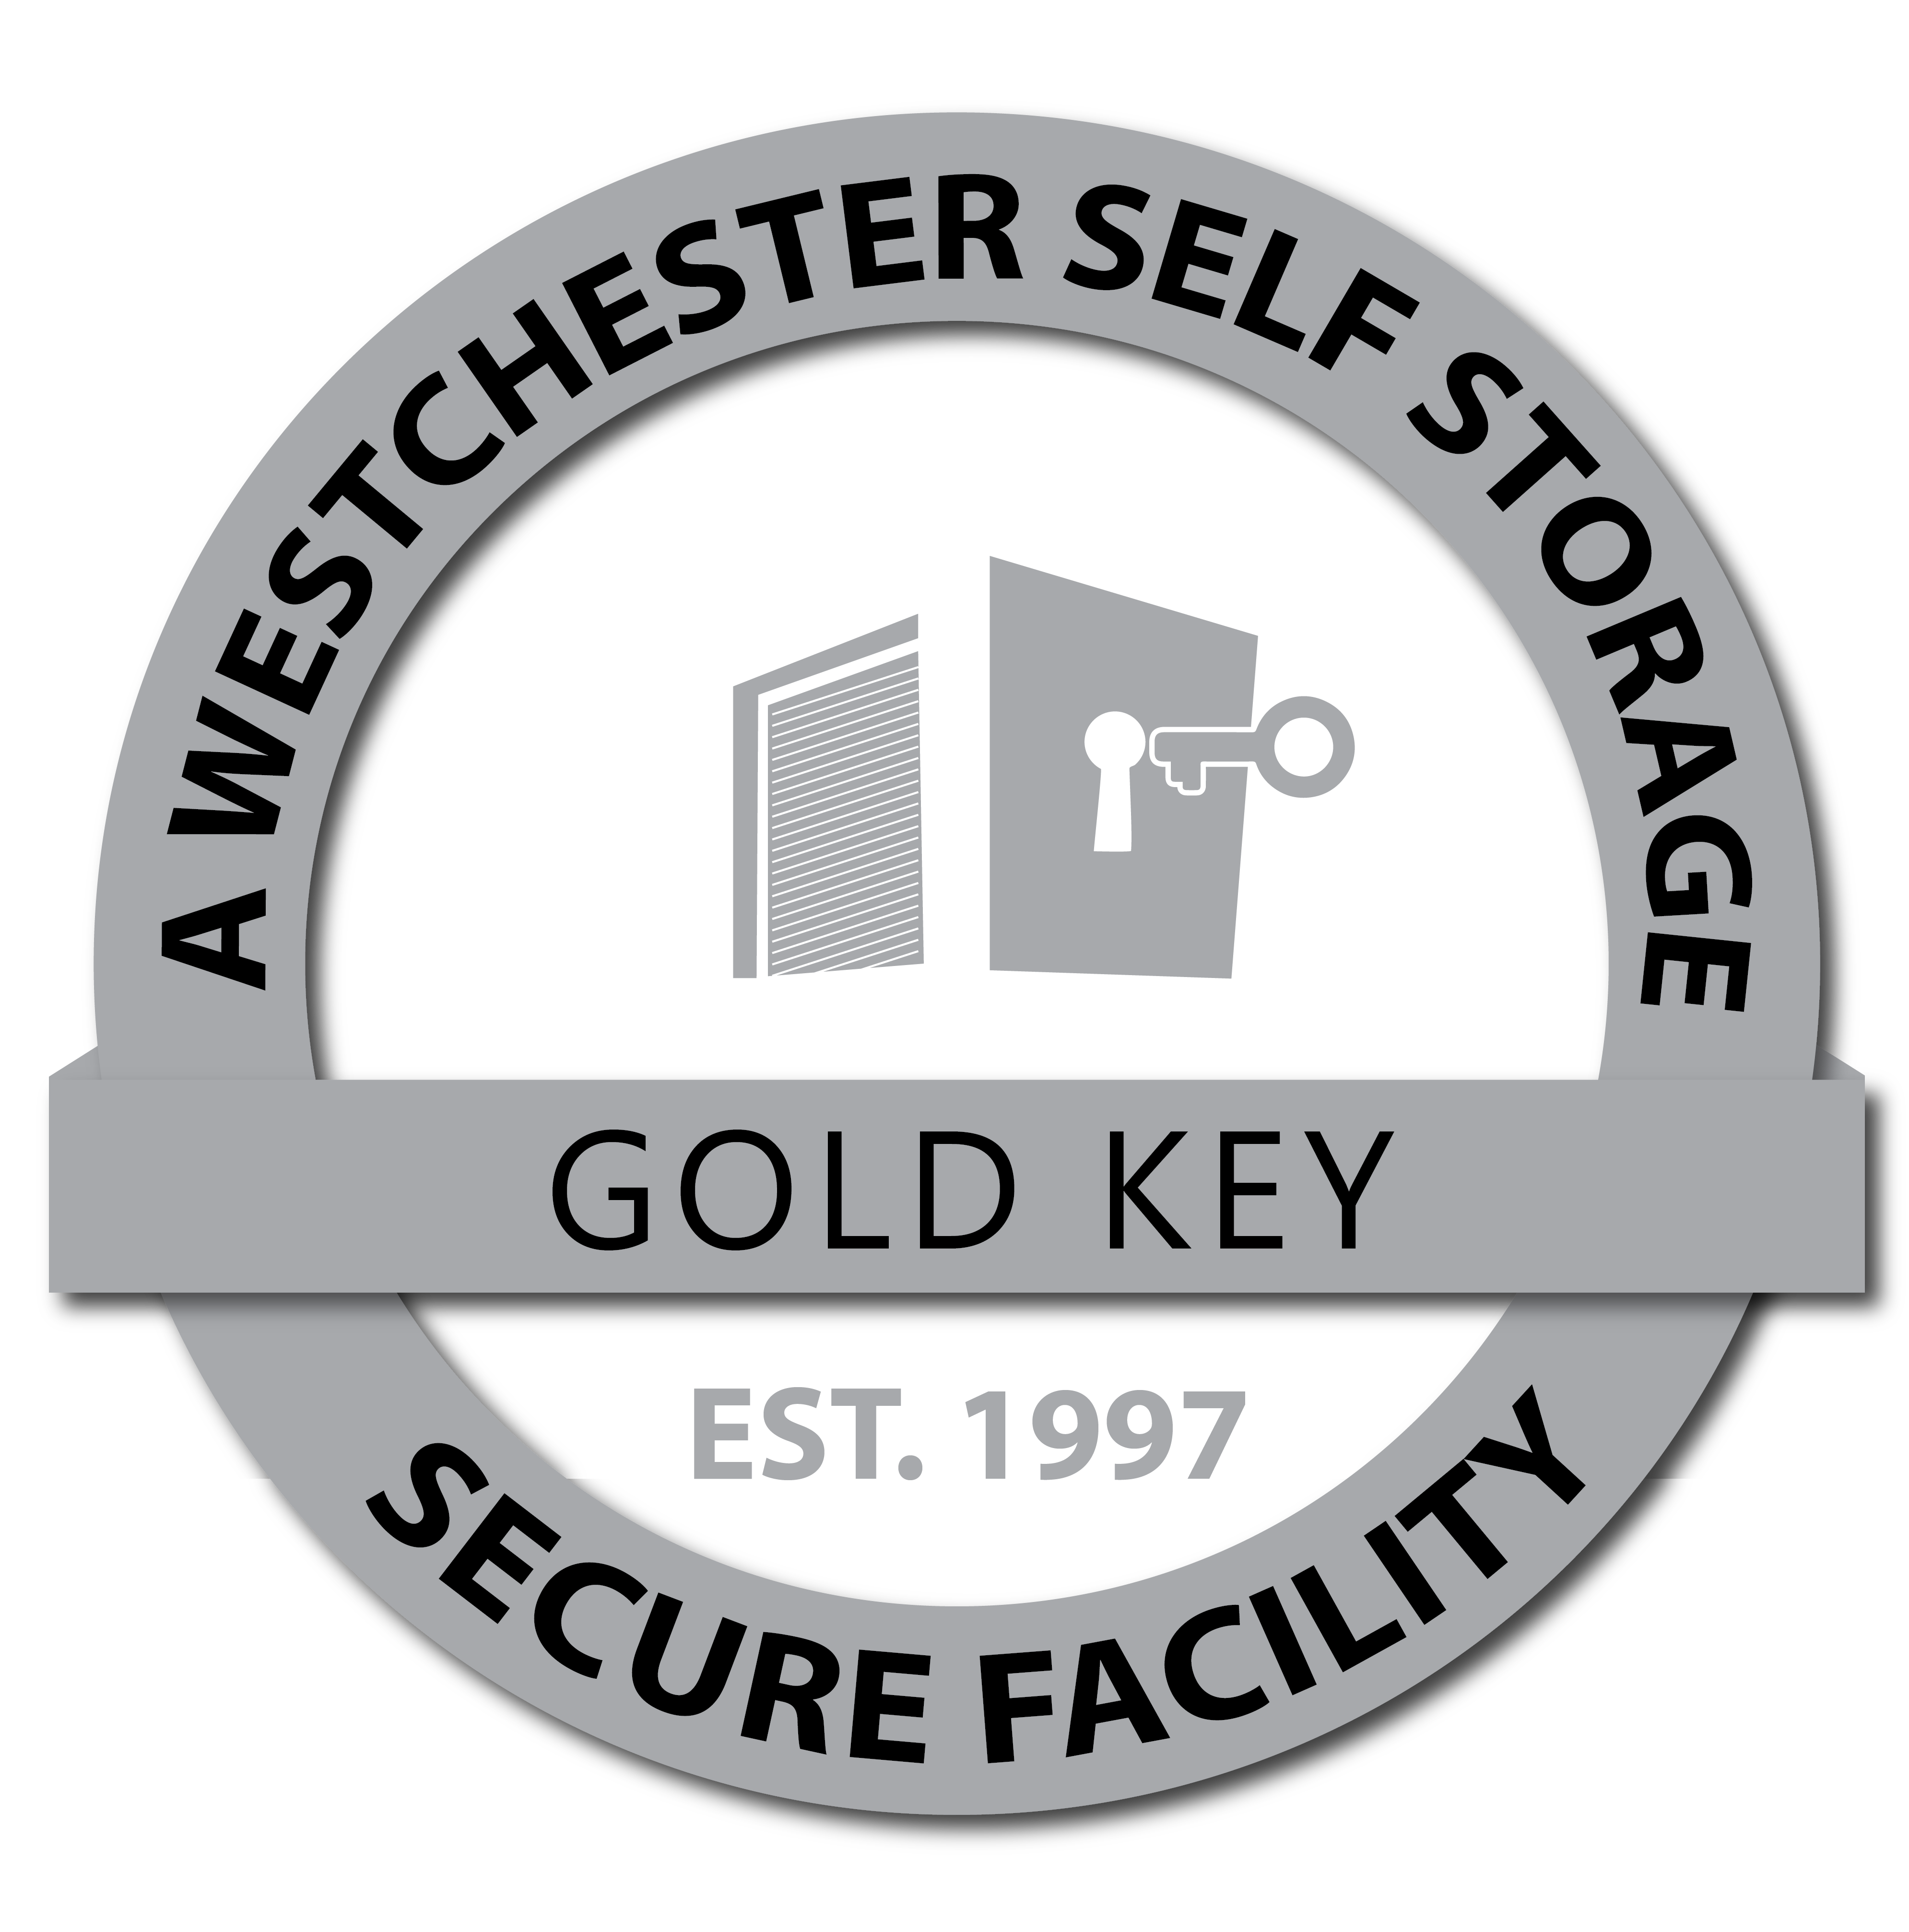 ABOUT US Westchester Self Storage Grey Logo